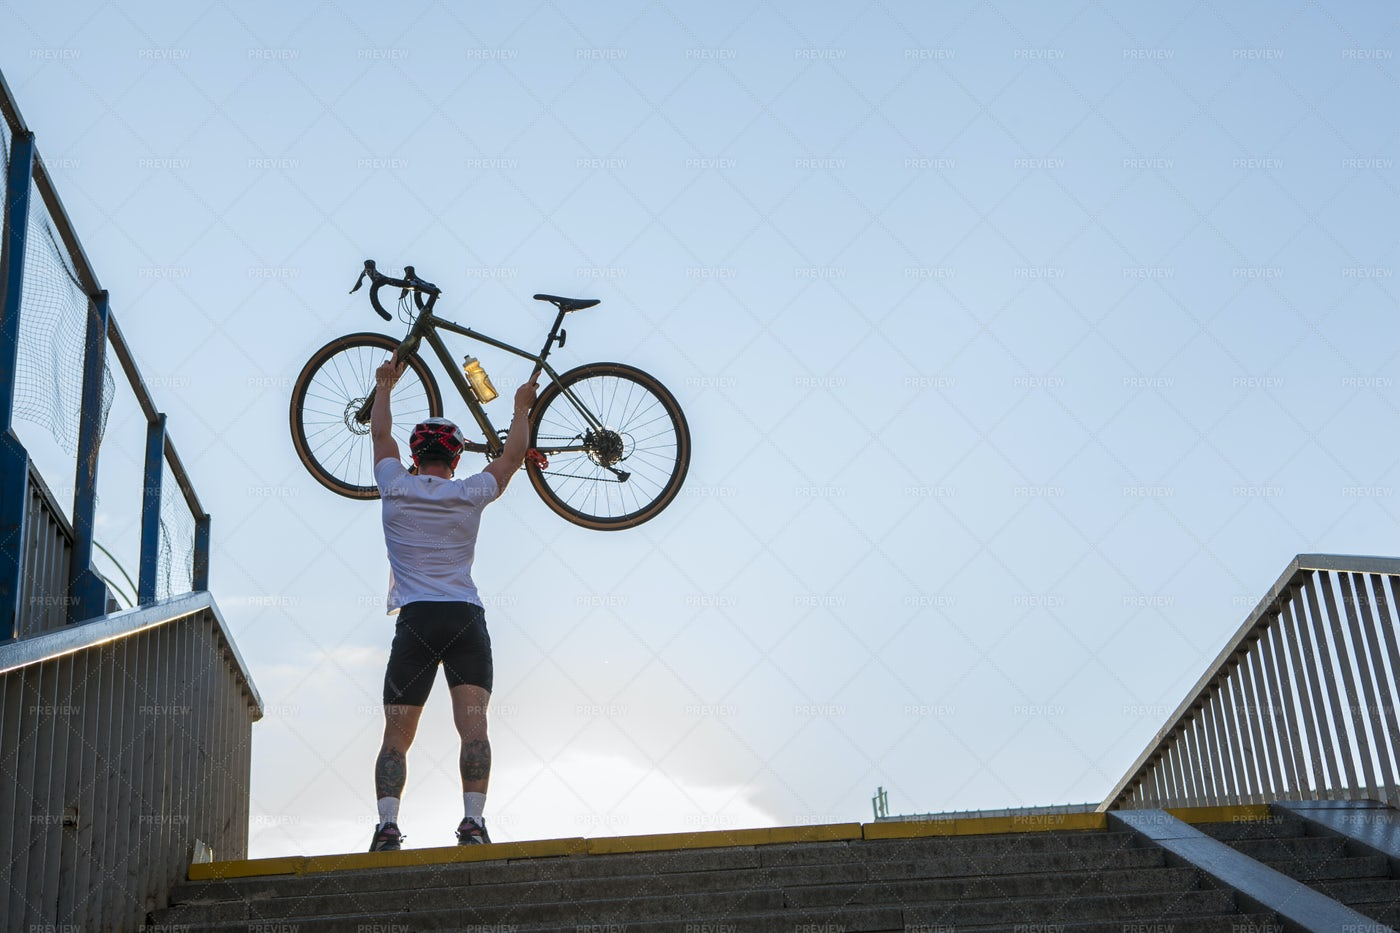 Lifting Bicycle In The Air: Stock Photos